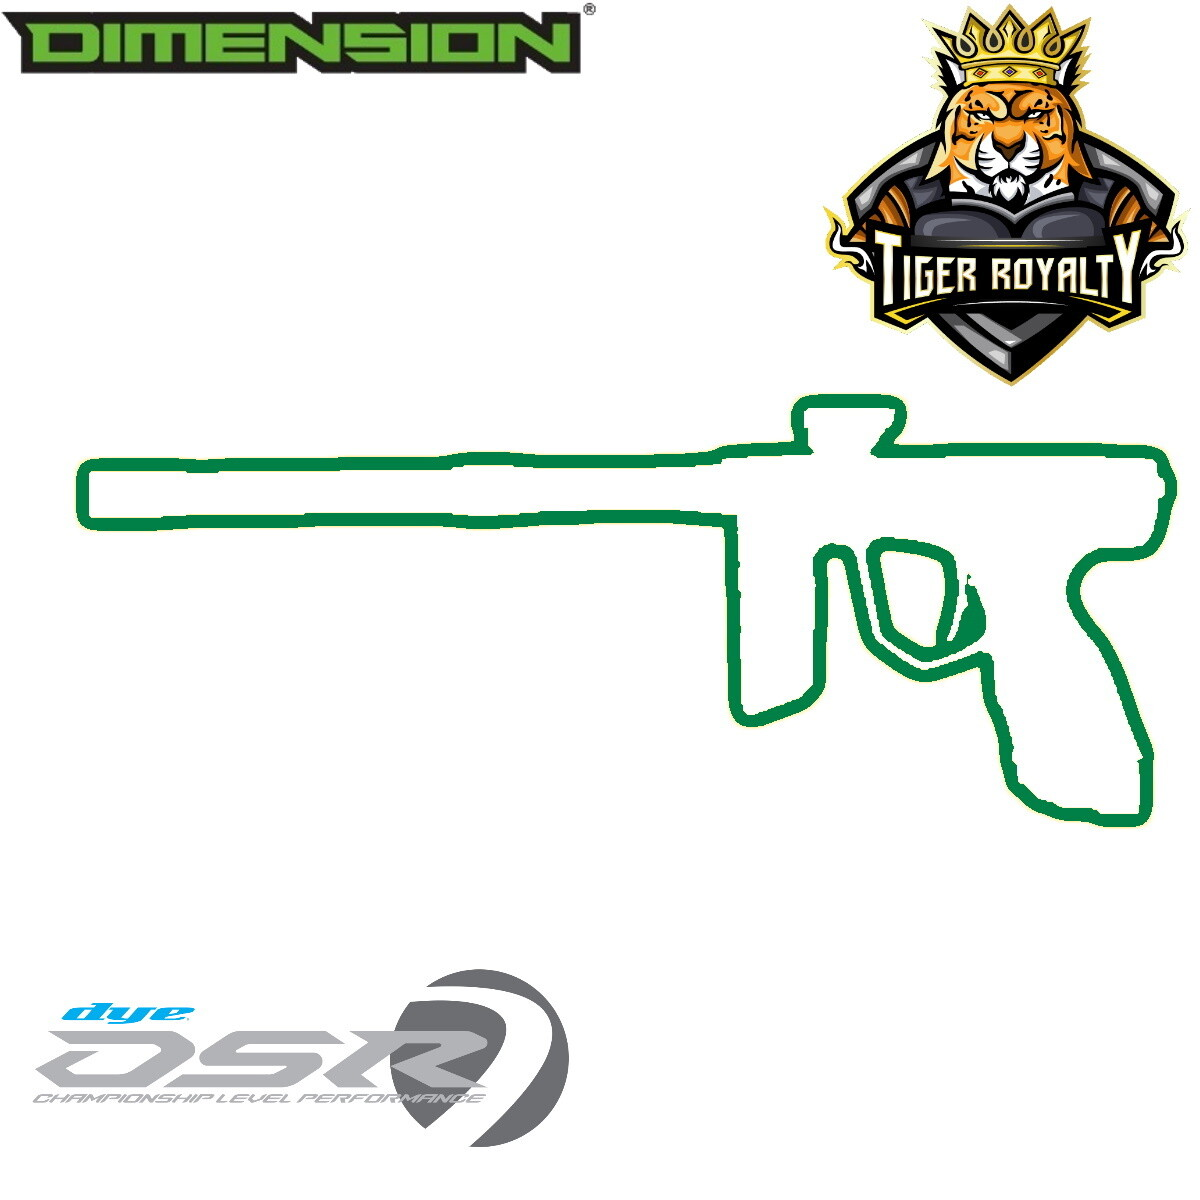 Dye DSR - Dimension Limited Edition 1 of 1 / Tiger Royalty - Spearmint